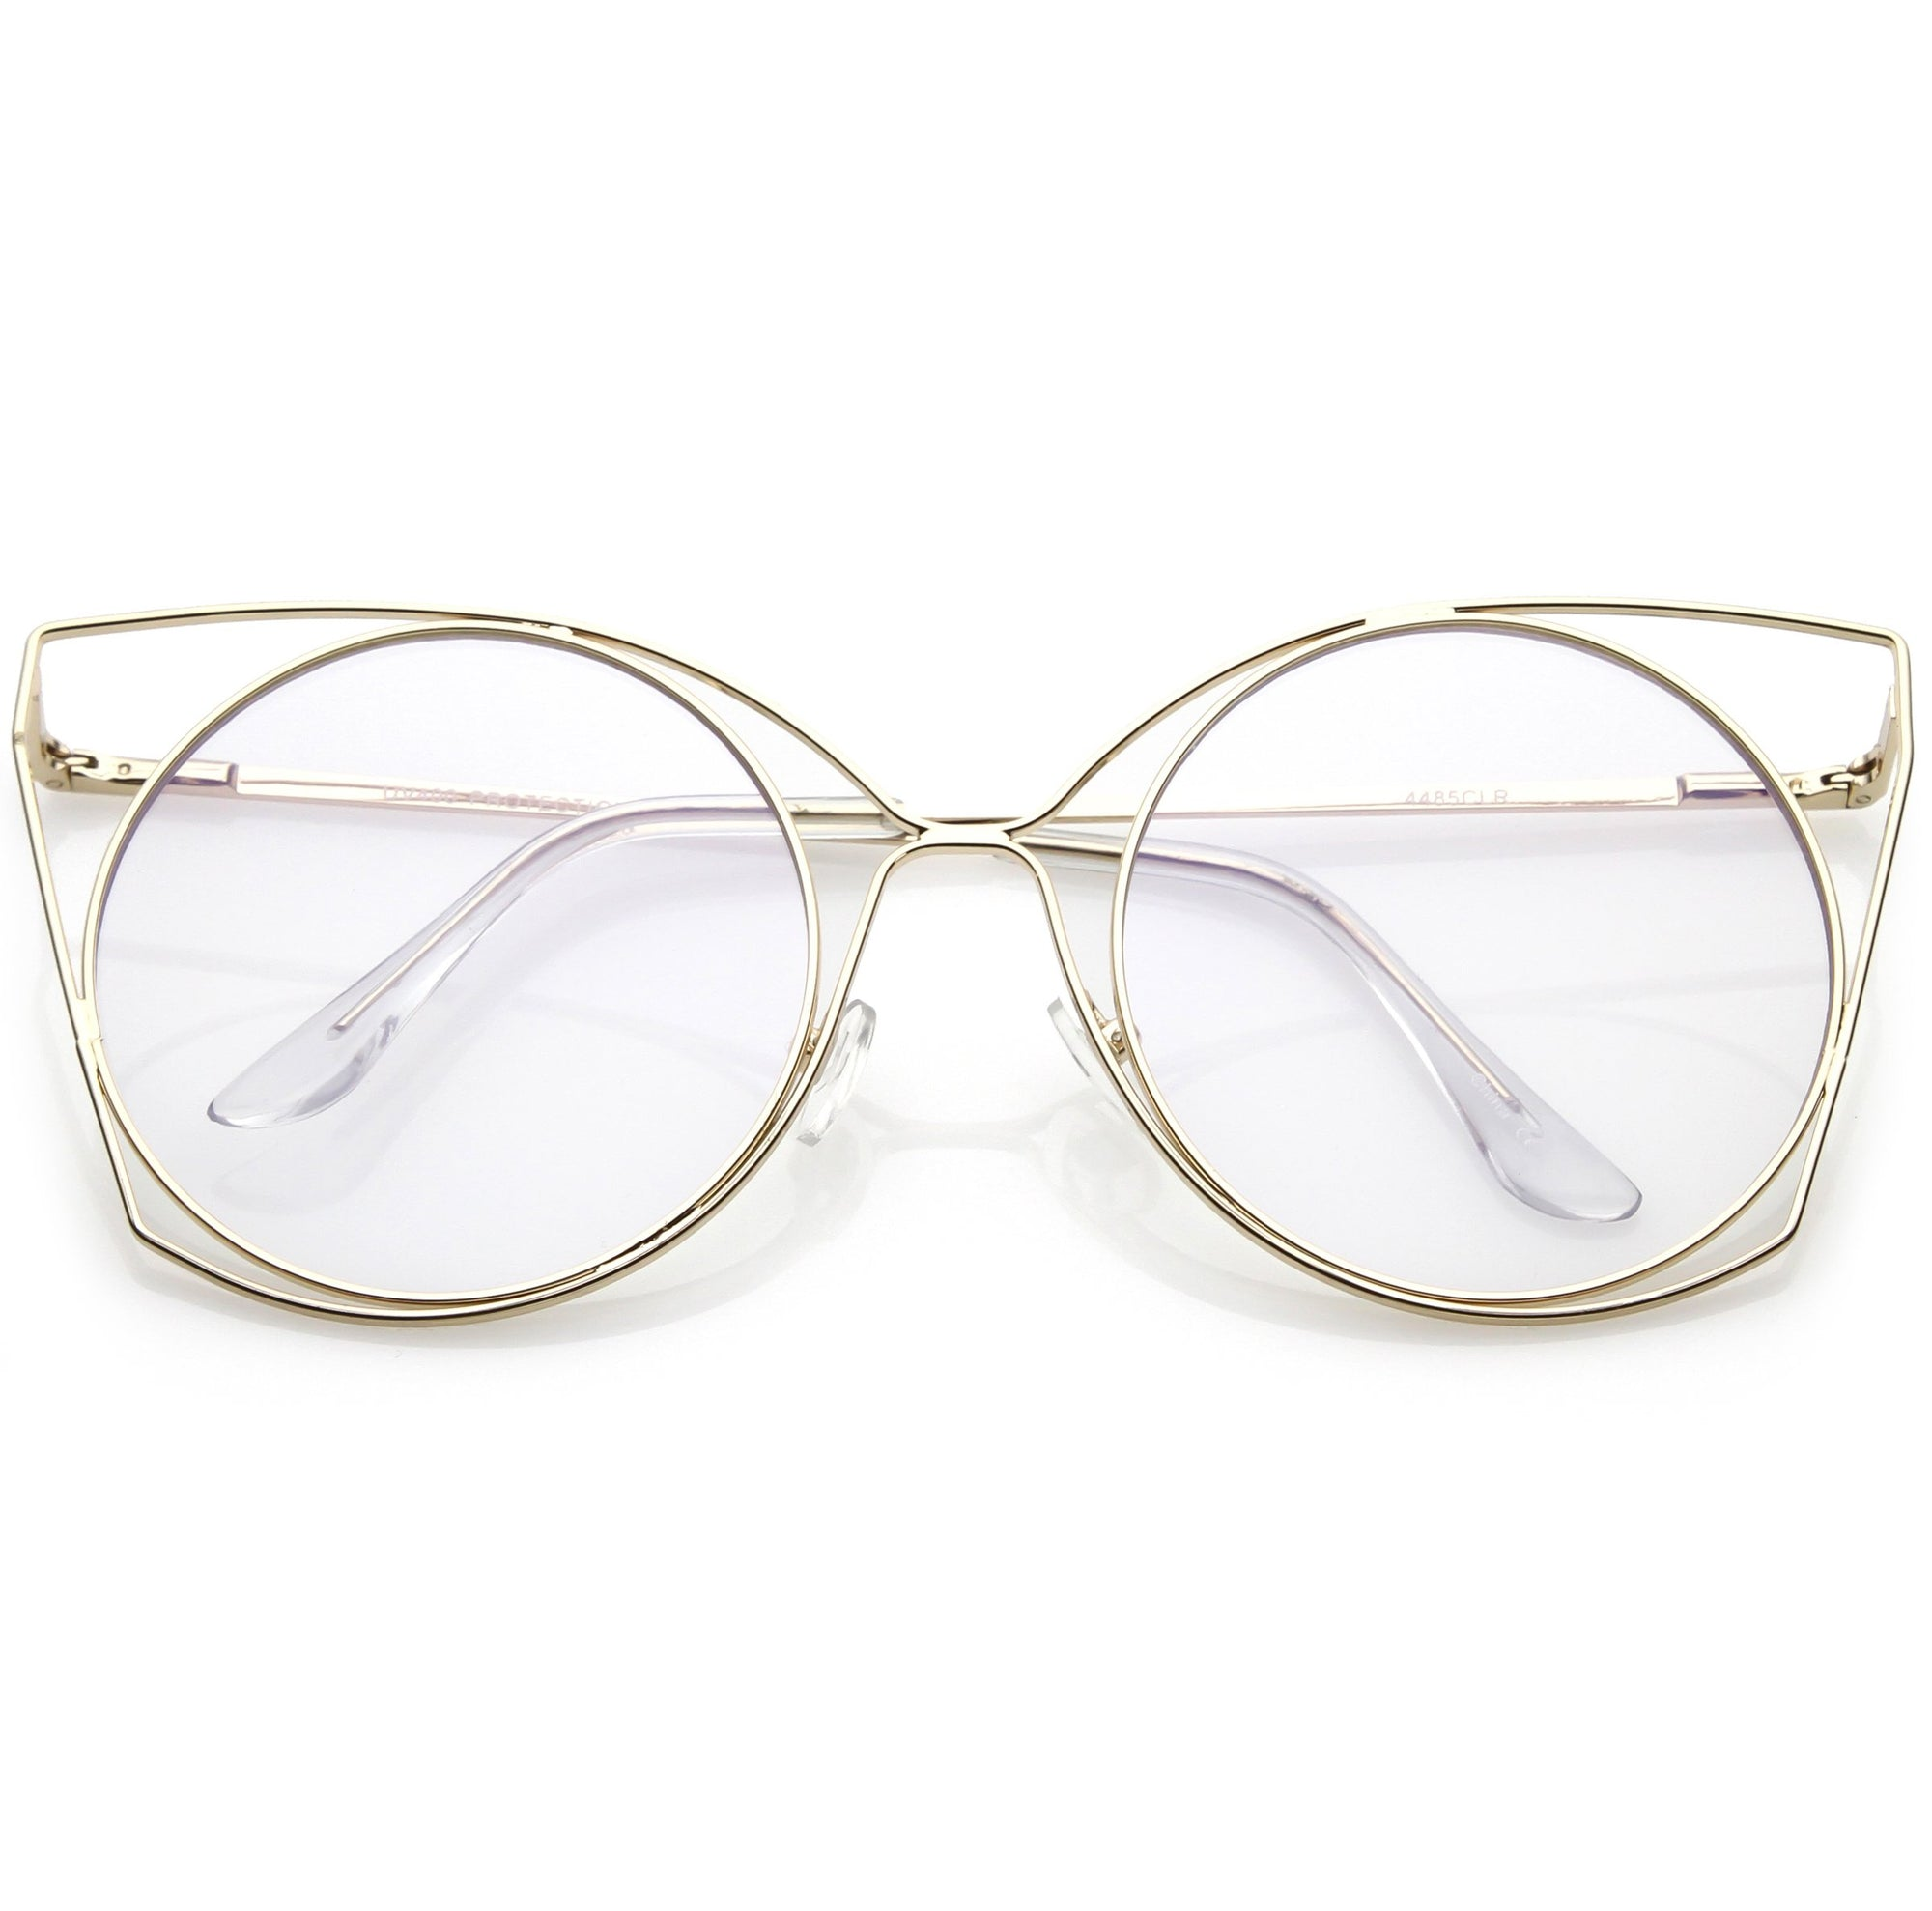 8452d9ca959 ... Oversize Laser Cut Round Flat Clear Lens Cat Eye Glasses C347 · Gold  Clear